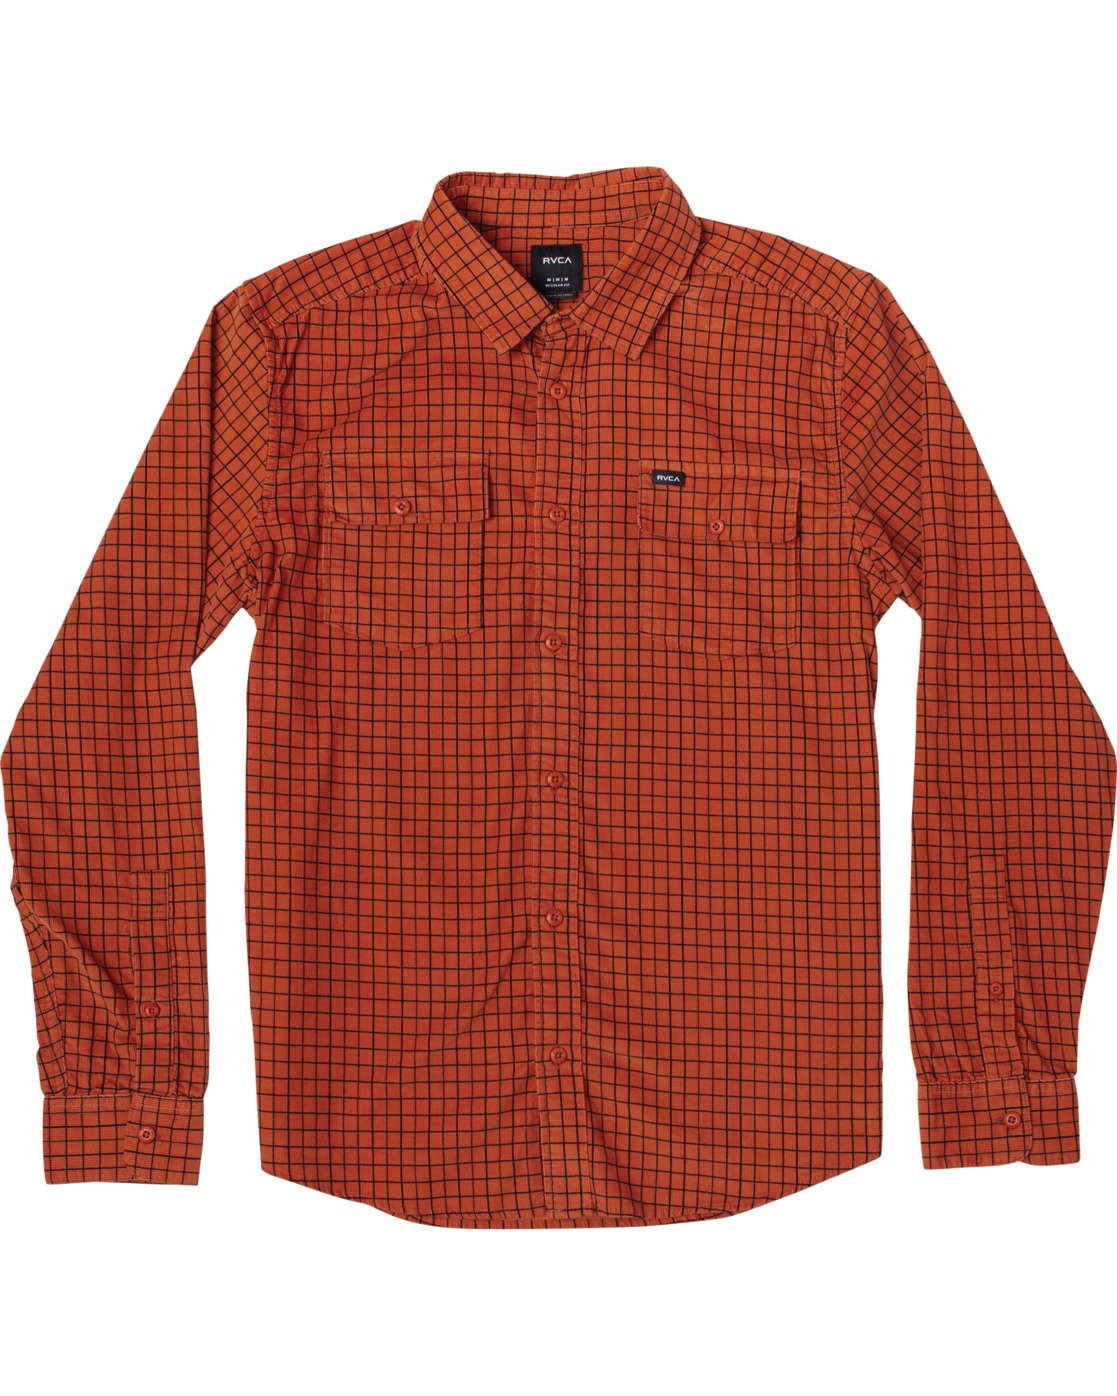 0 FREEMAN CORD LONG SLEEVE SHIRT Red M5583RFC RVCA